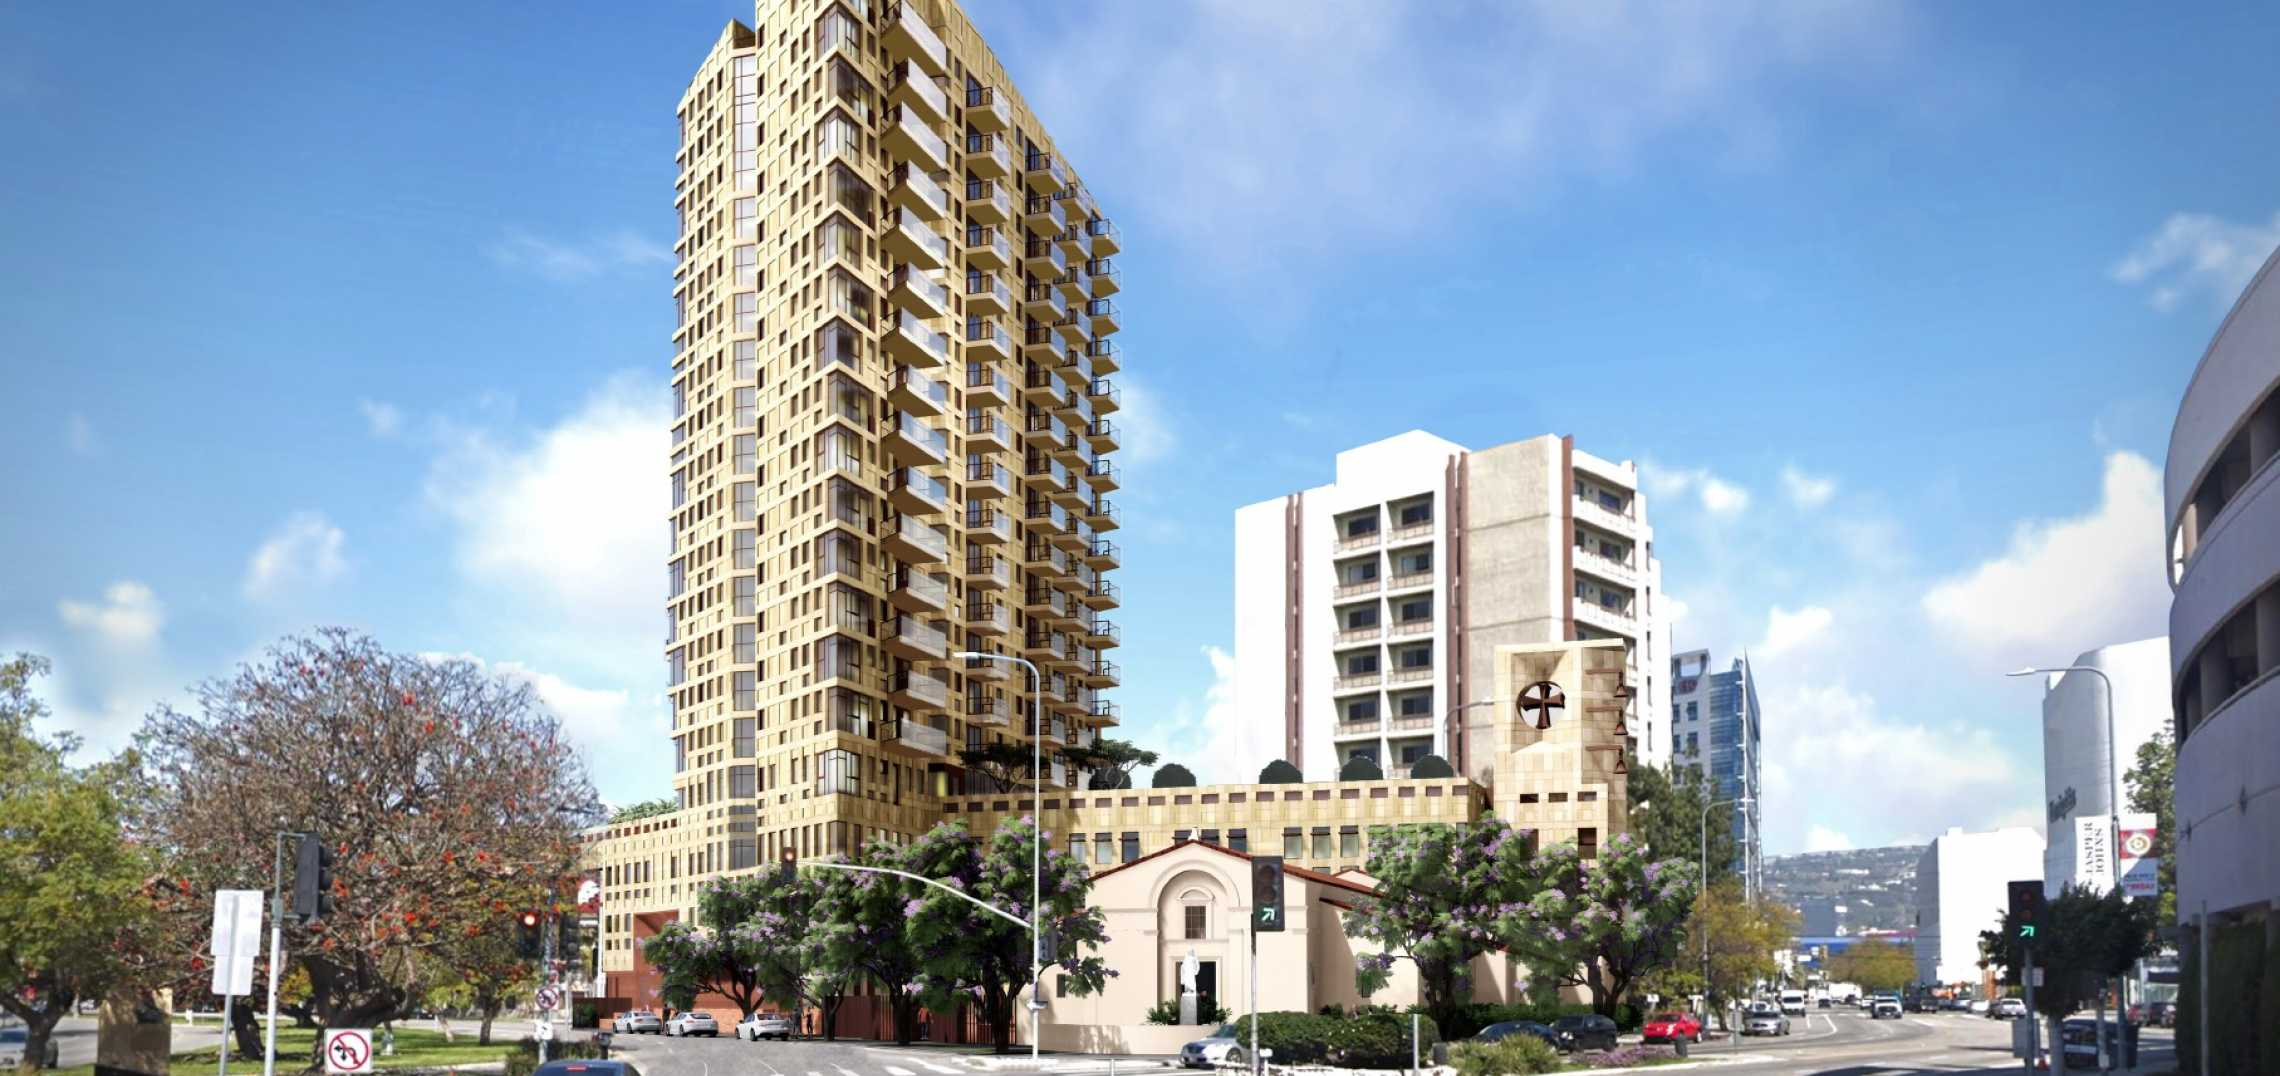 Beverly Center-Adjacent Apartment Tower Slated to Break Ground in 2021